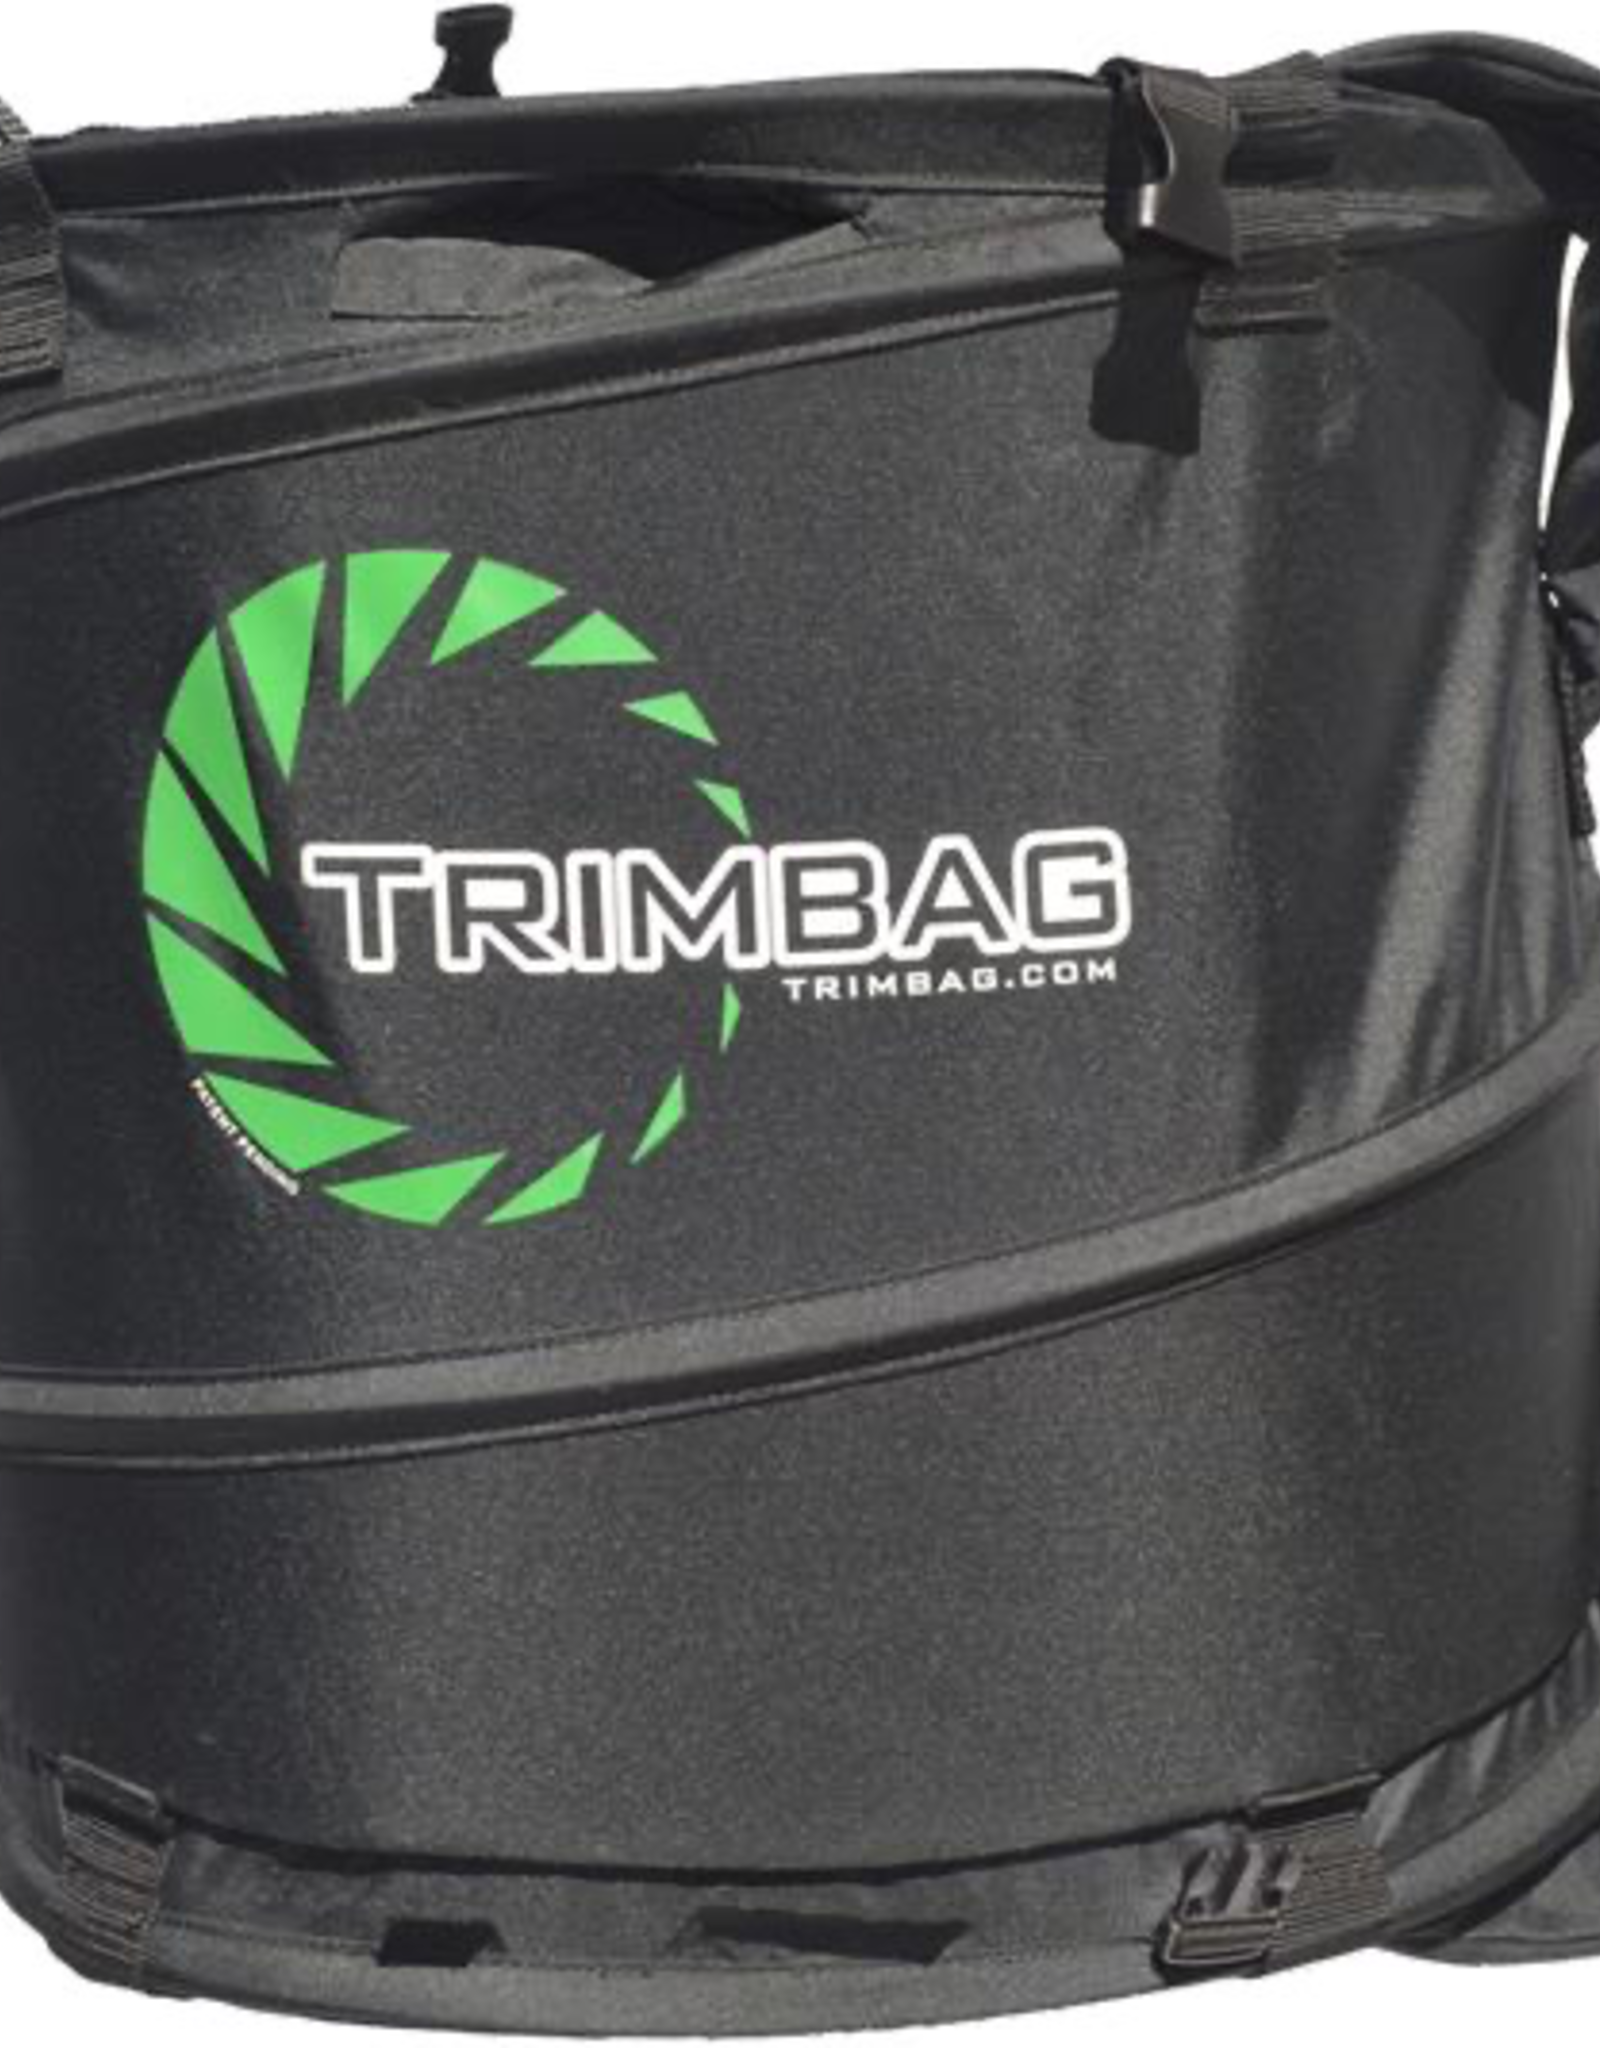 Trimbag Product Details<br /> Trimbag Dry Trimmer<br /> <br /> The Trimbag collapsible hand-held dry trimmer brings a creative new approach to trimming while maintaining the best of machine trimming standards. With user control and a variety of time saving techniques, Trimbag brin